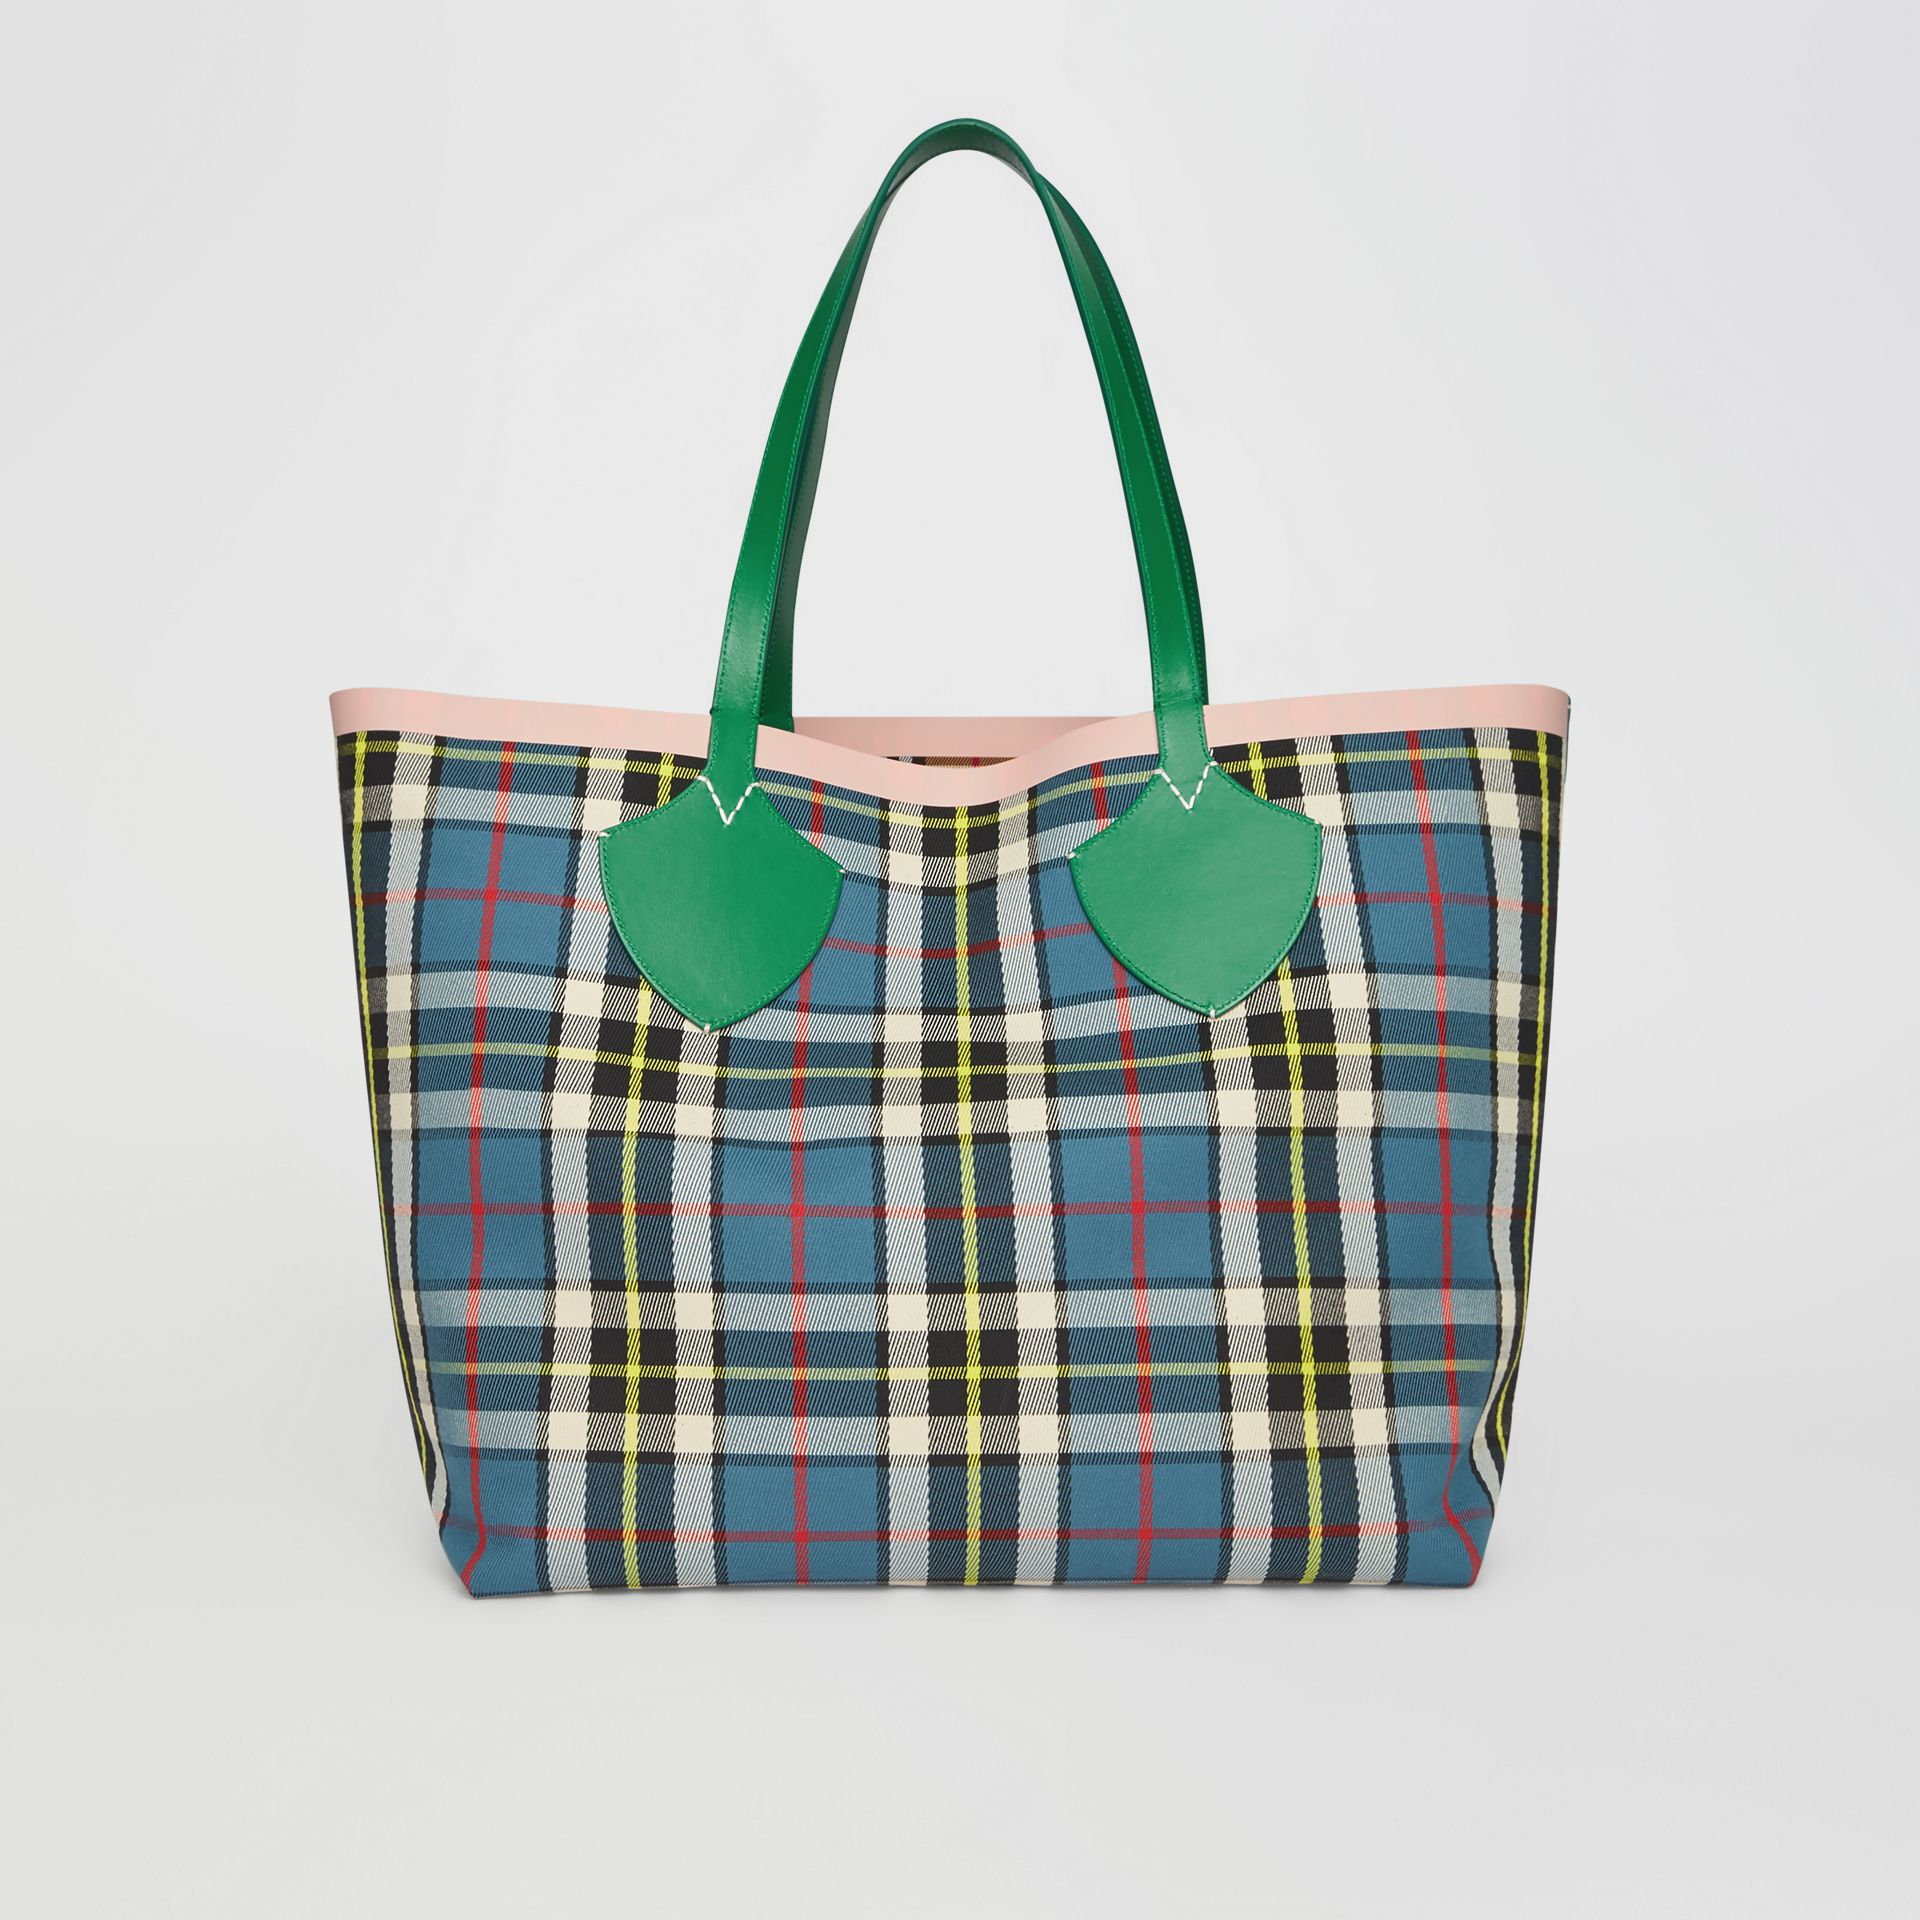 The Giant Reversible Tote in Vintage Check in Palm Green/pink Apricot - Women | Burberry - gallery image 9